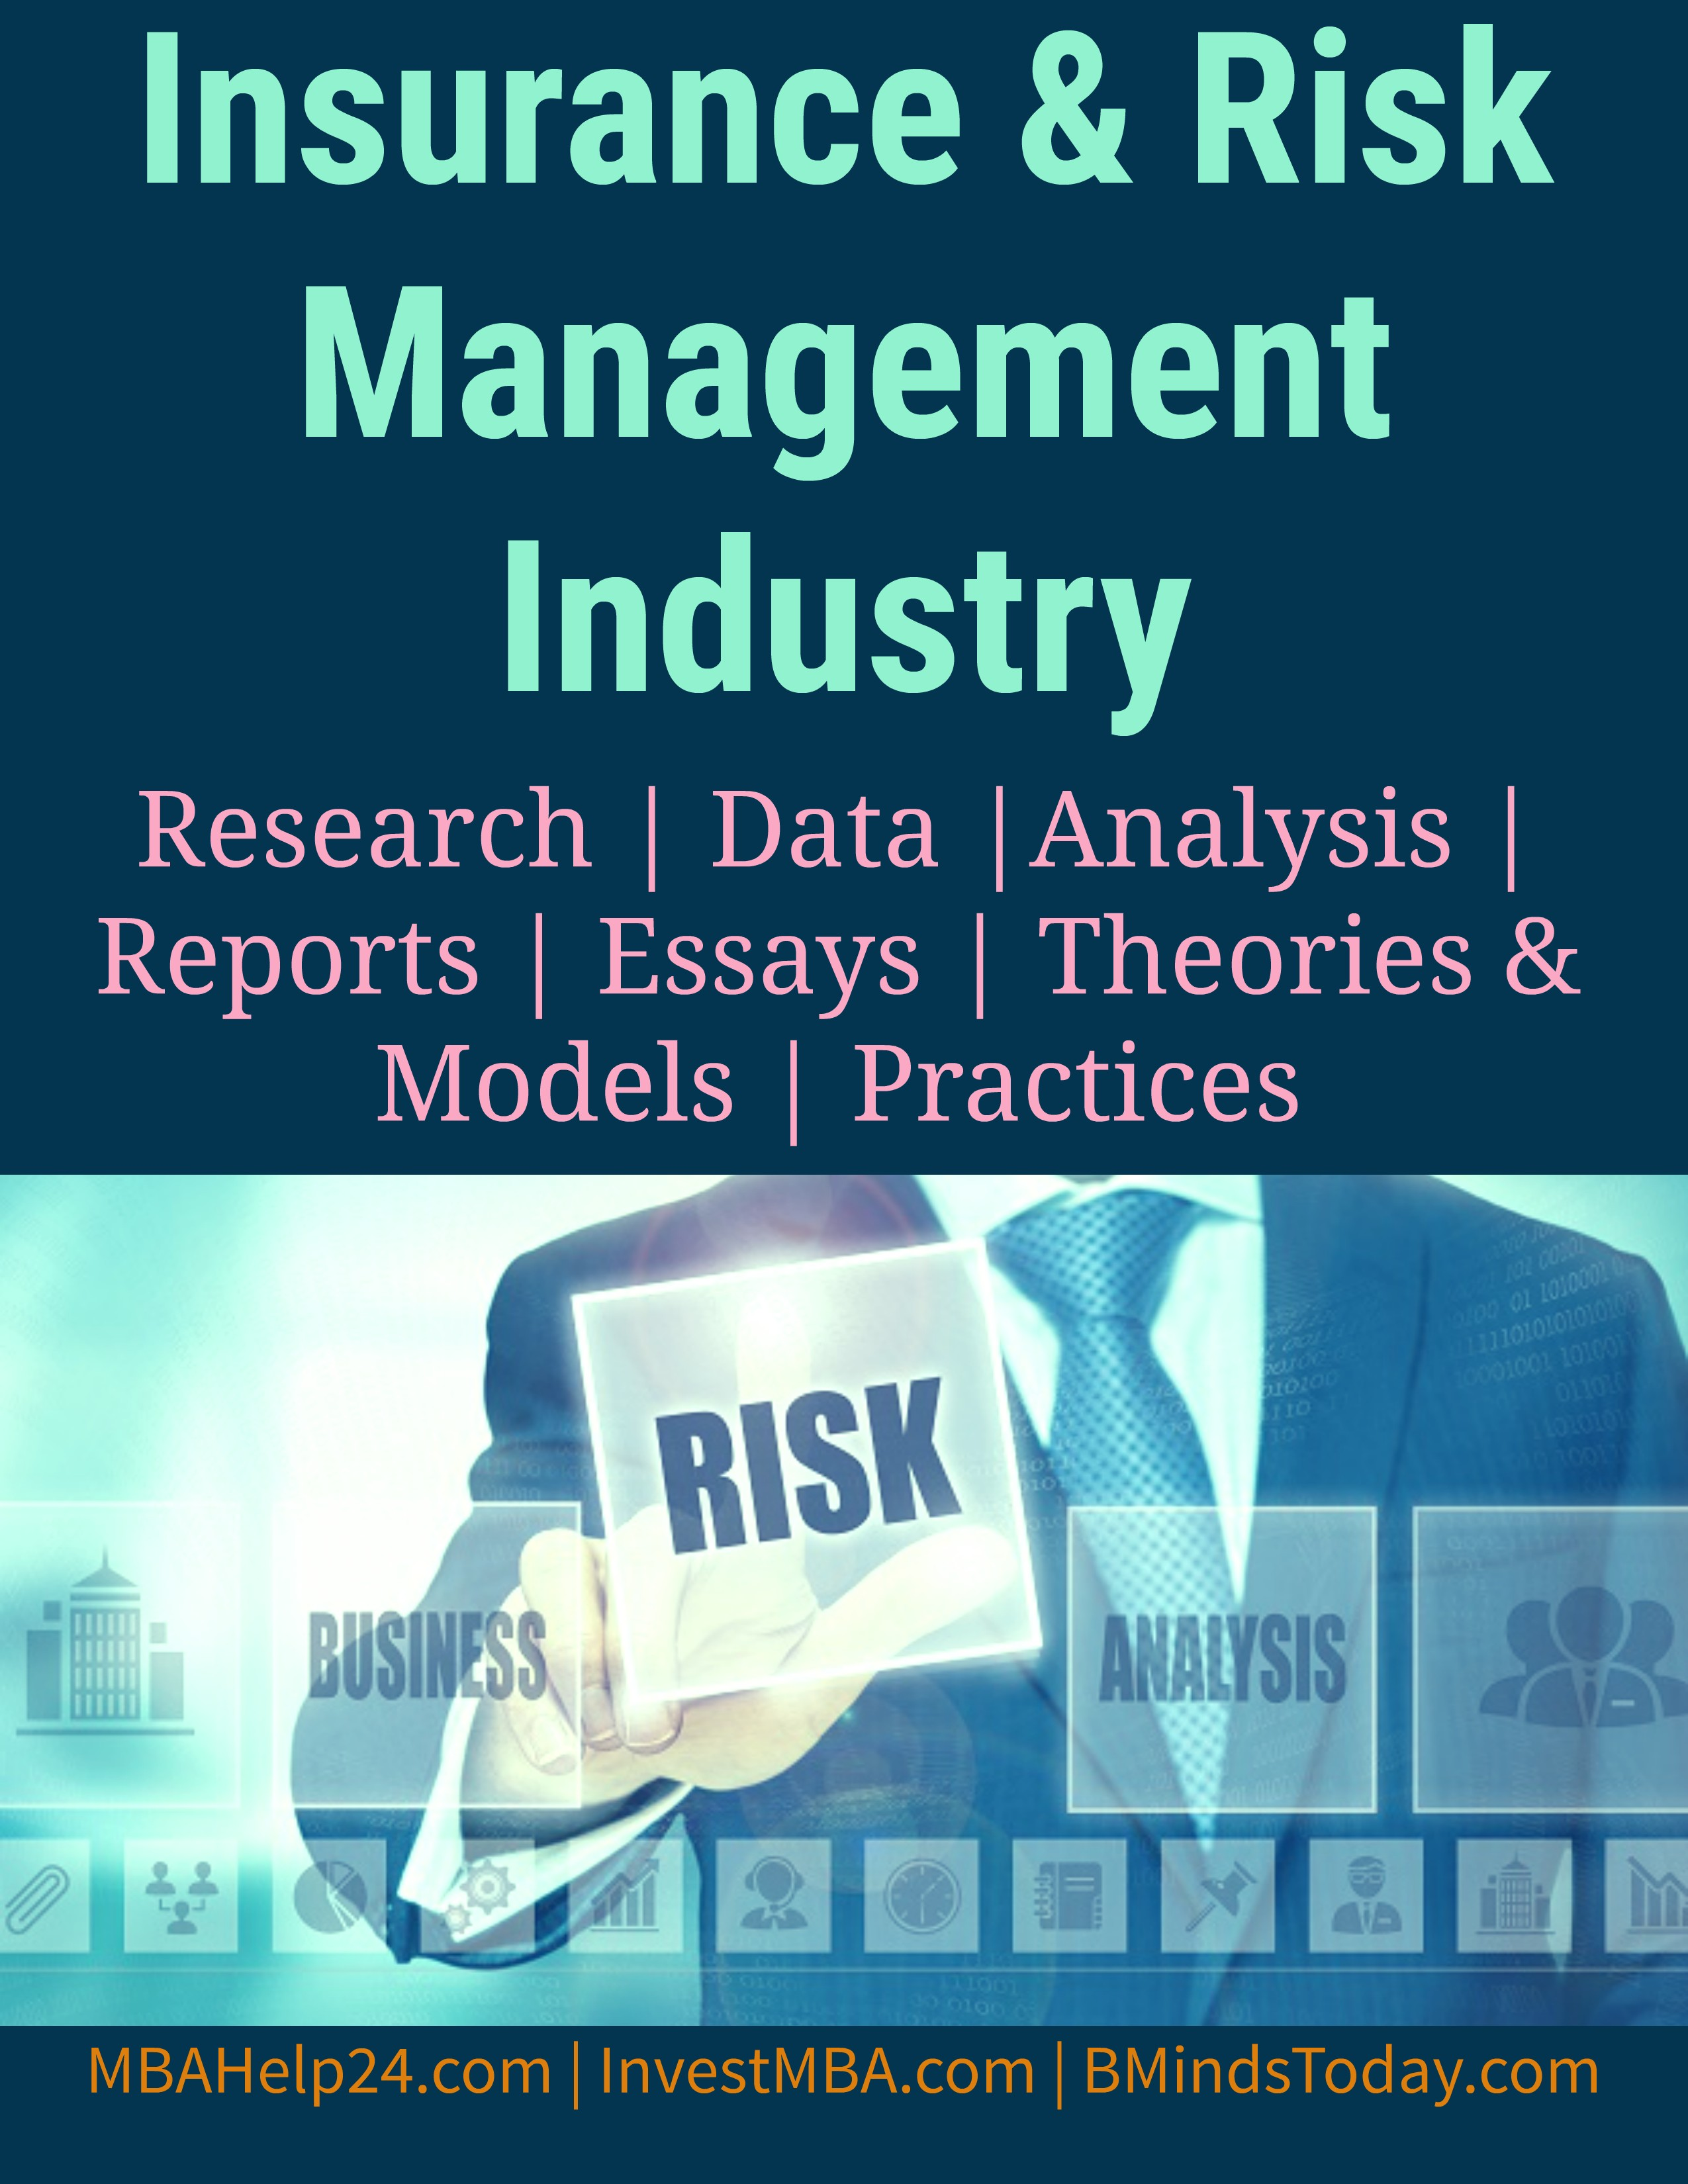 Insurance and Risk Management Industry- MBA Risk Management